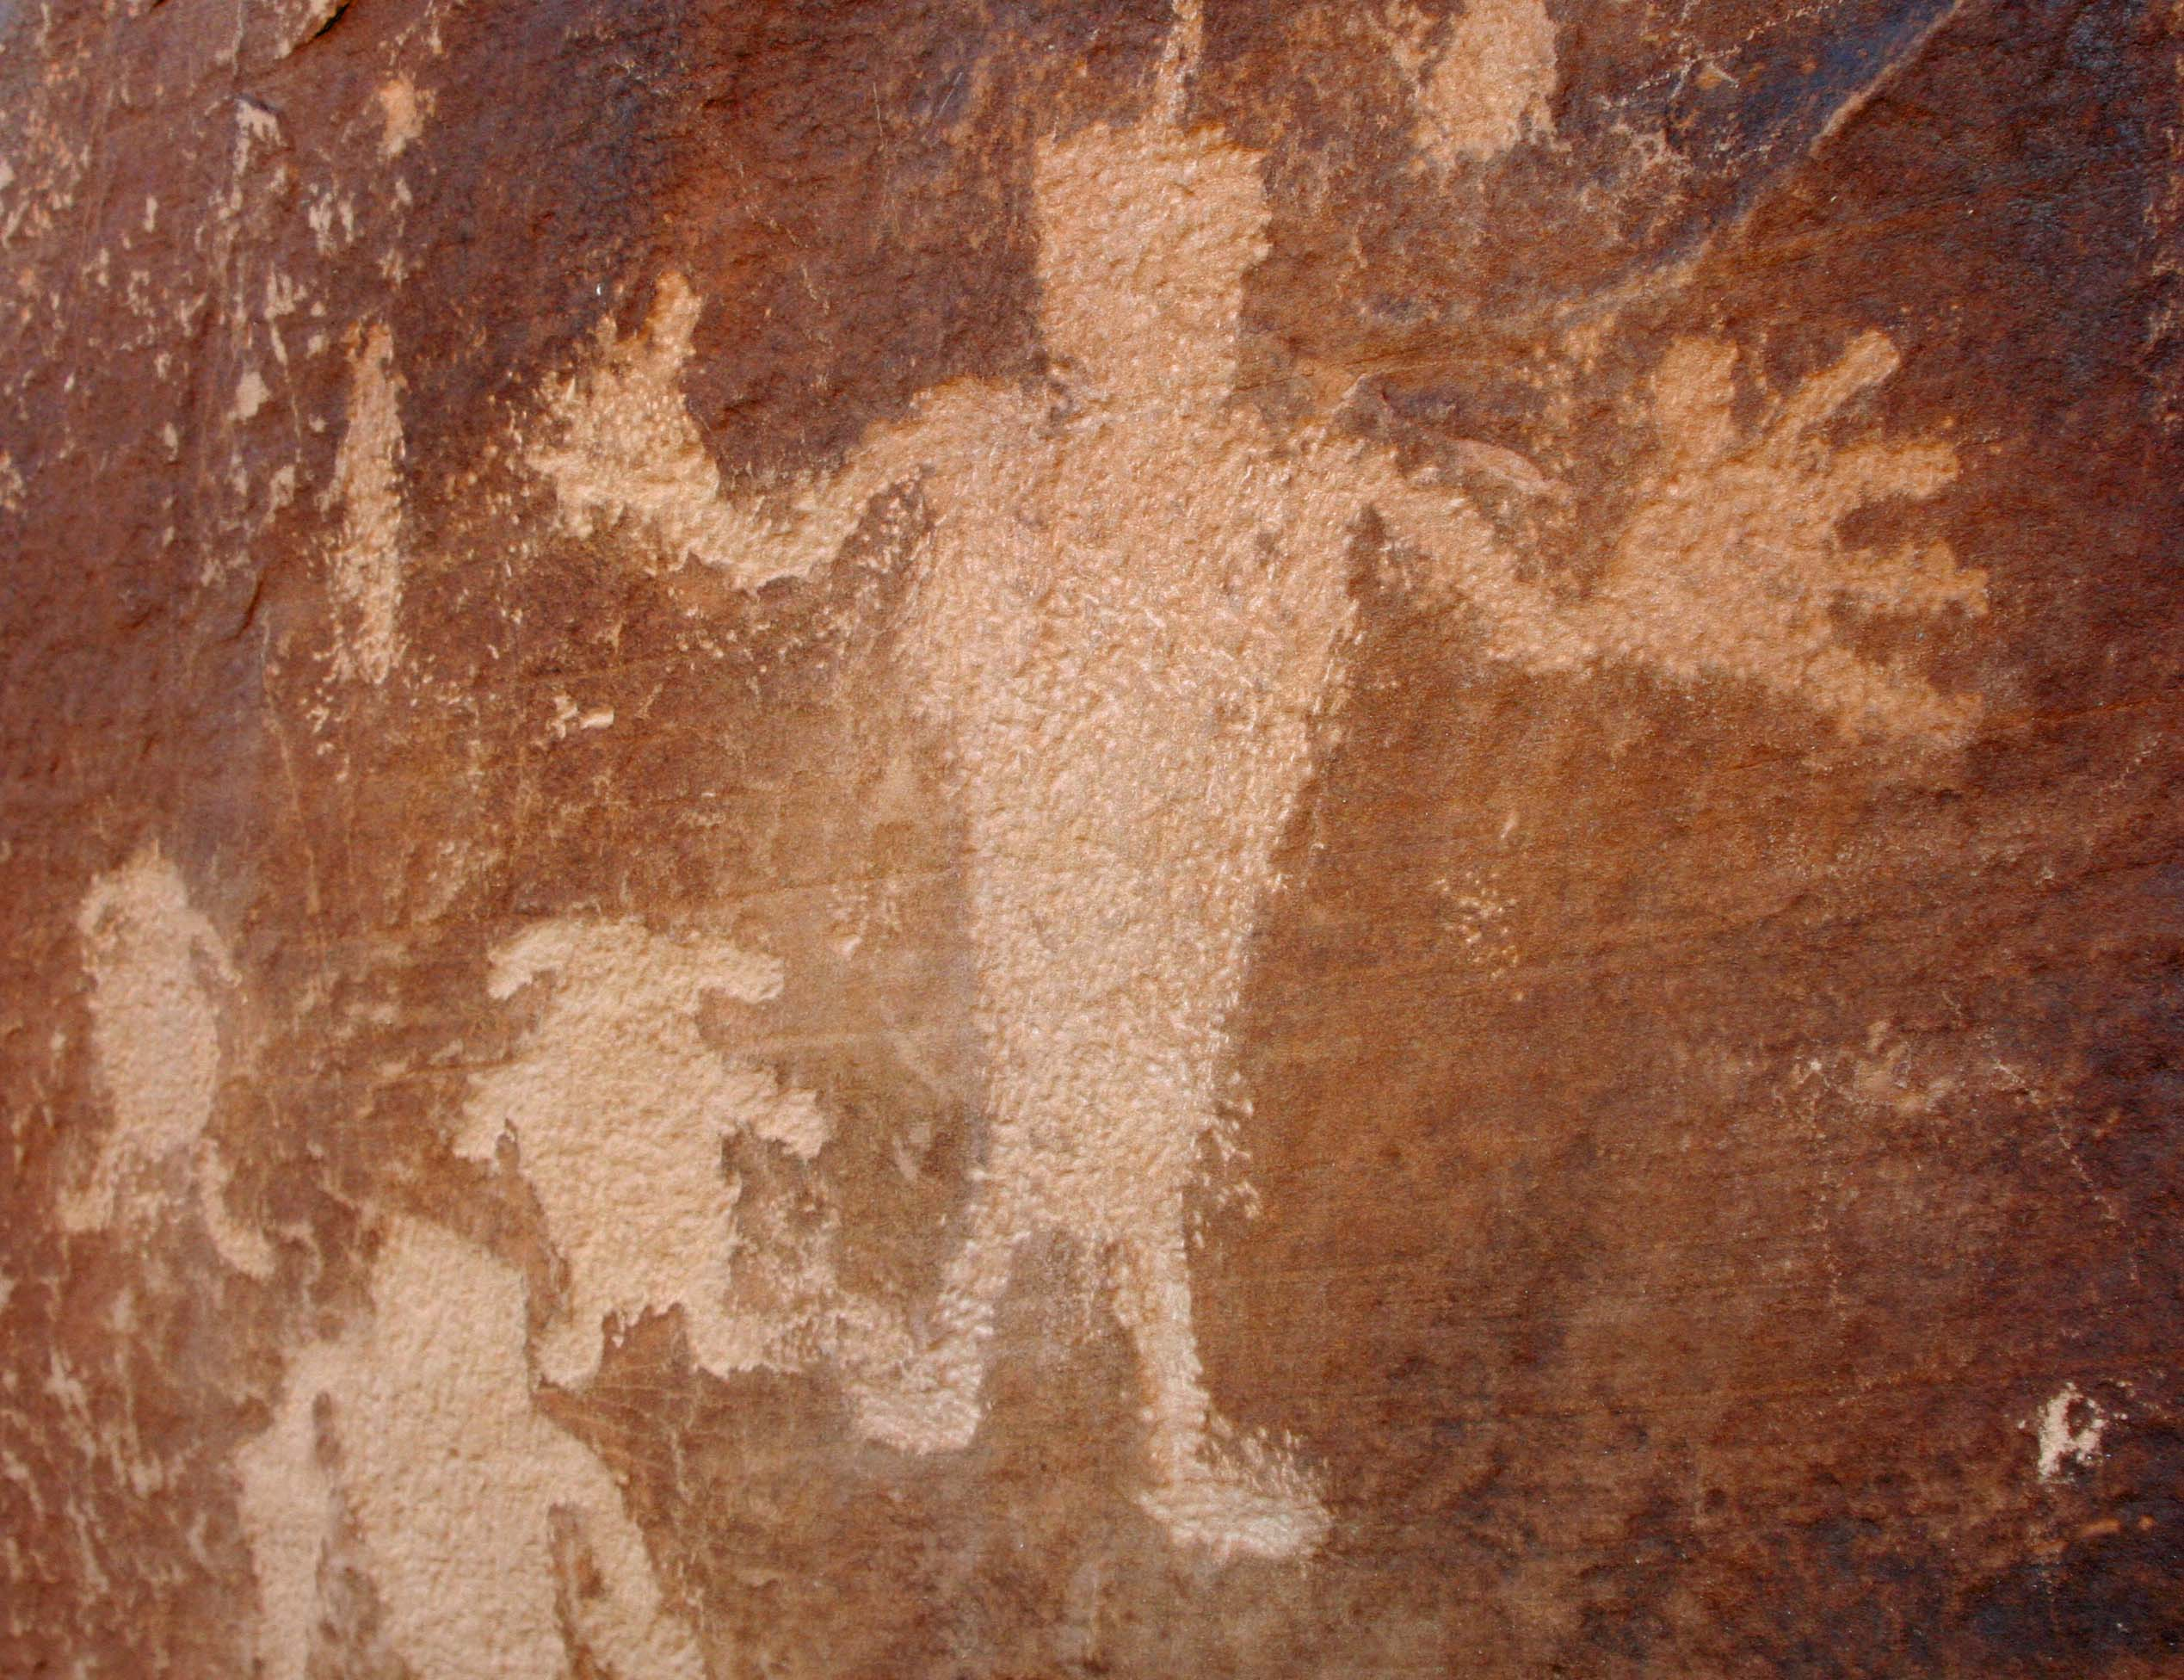 Peggy and I are great fans of Native America rock art, much of which is protected in National Parks and at National Monuments. This man with his big hands and fat little dogs has always been one of my favorites.